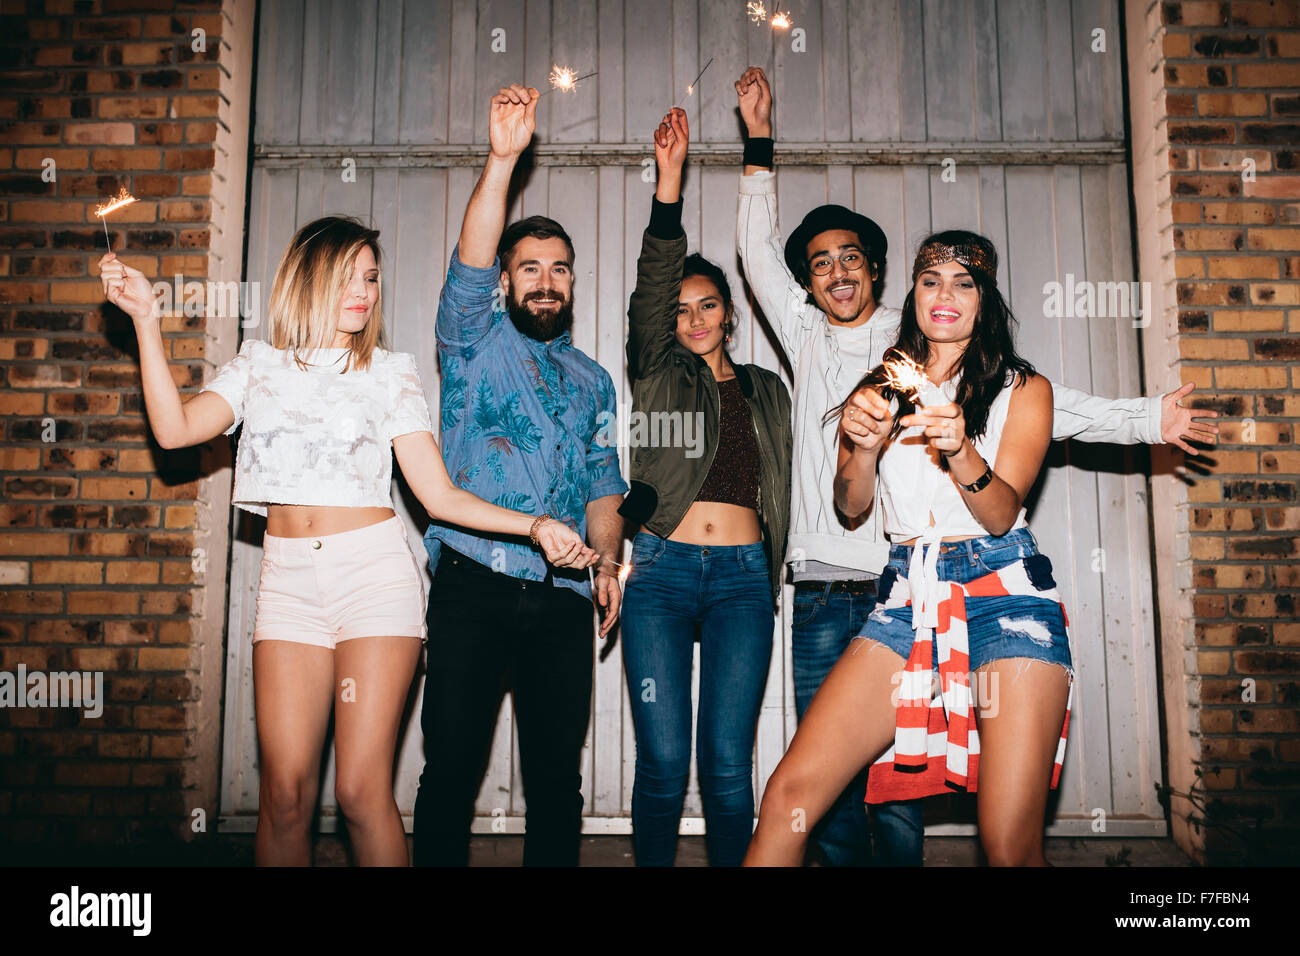 Happy young people out at night, celebrating with sparklers. Young friends having a party outdoors. - Stock Image